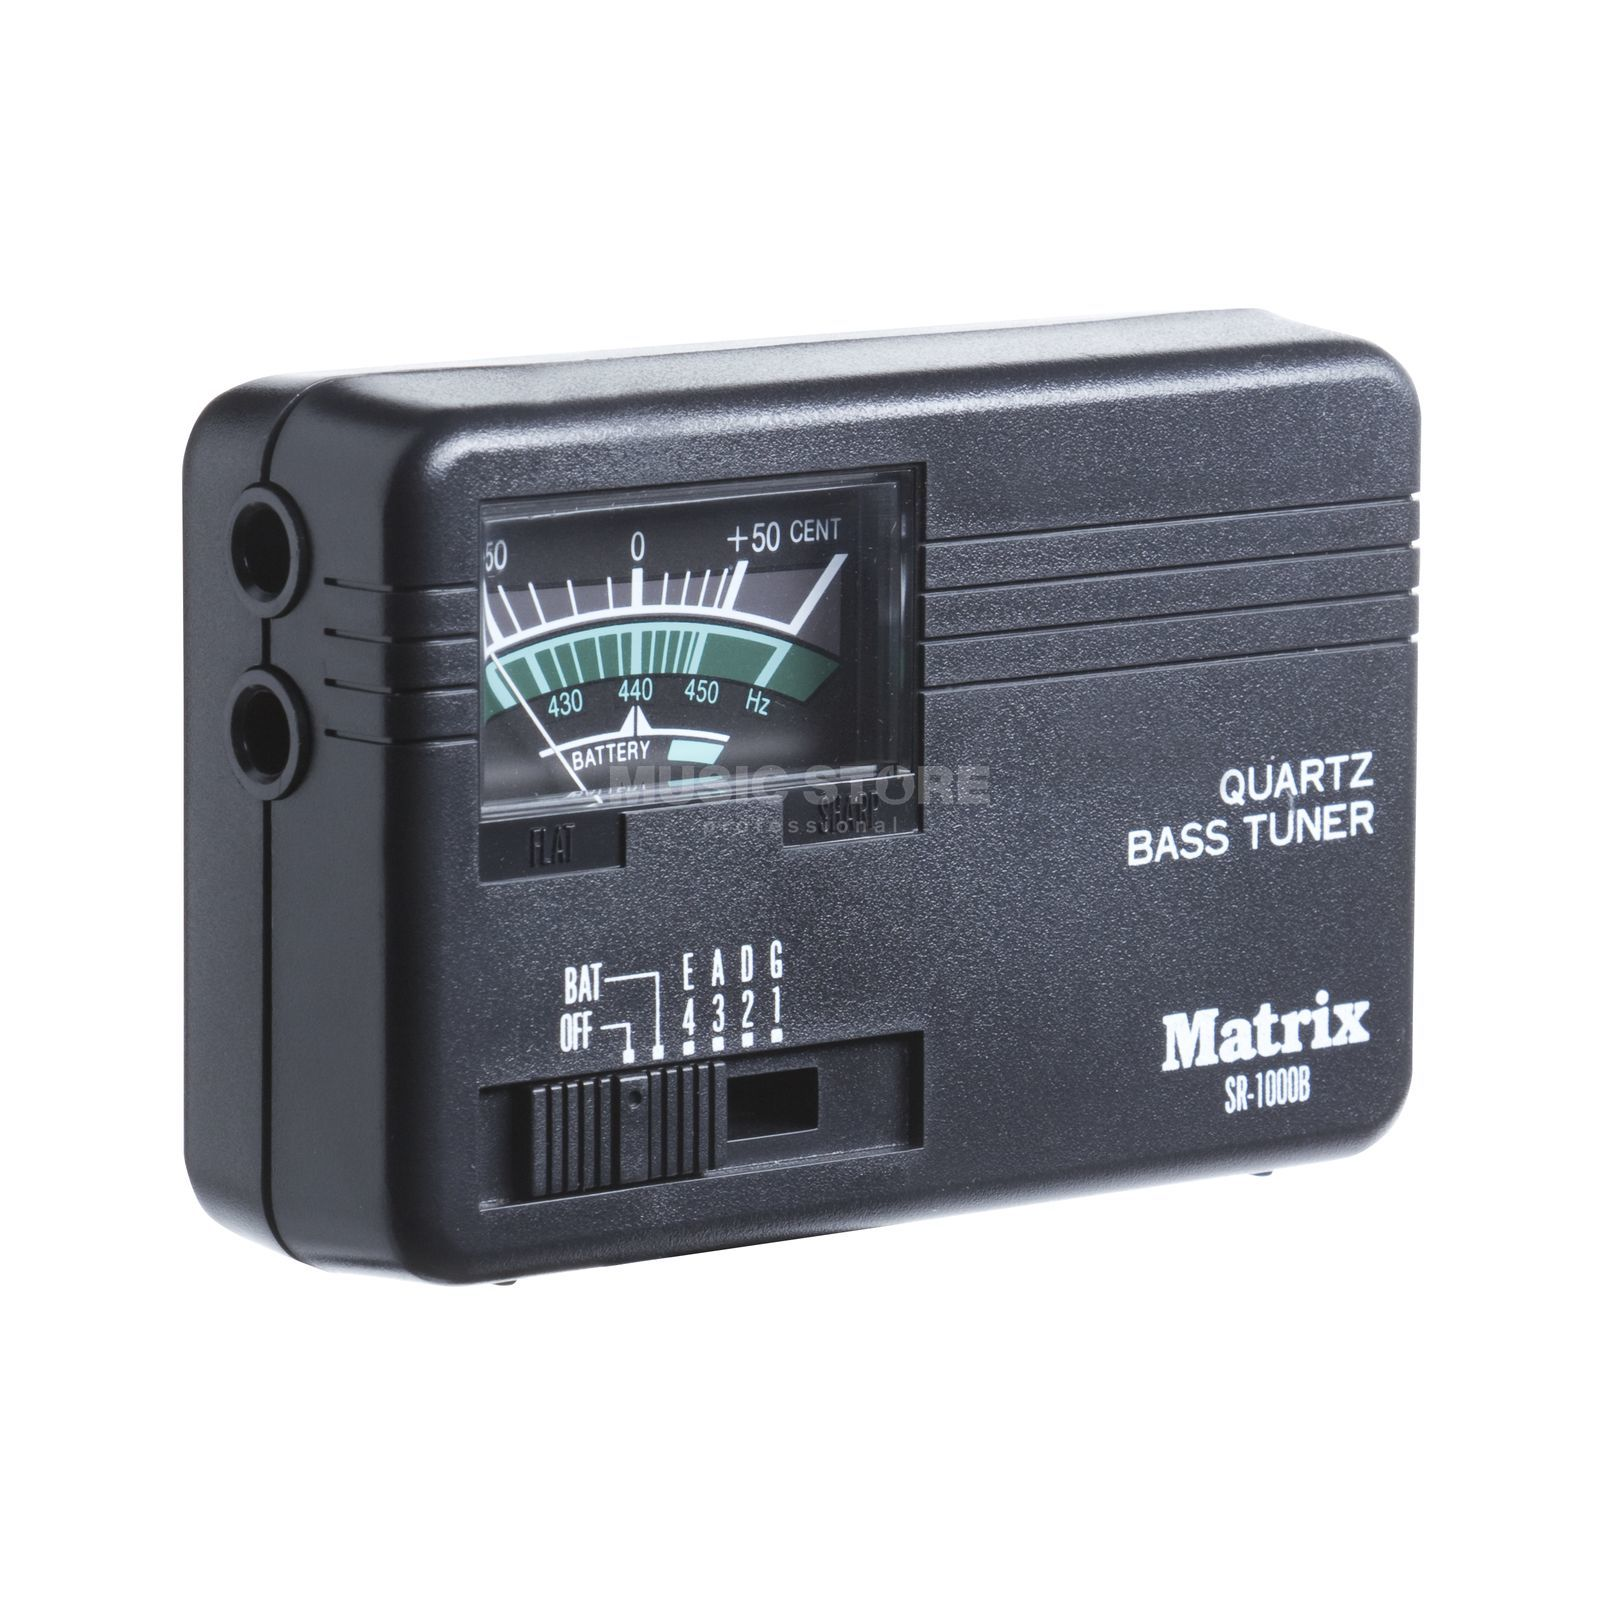 Matrix Quartz Bass Tuner Productafbeelding